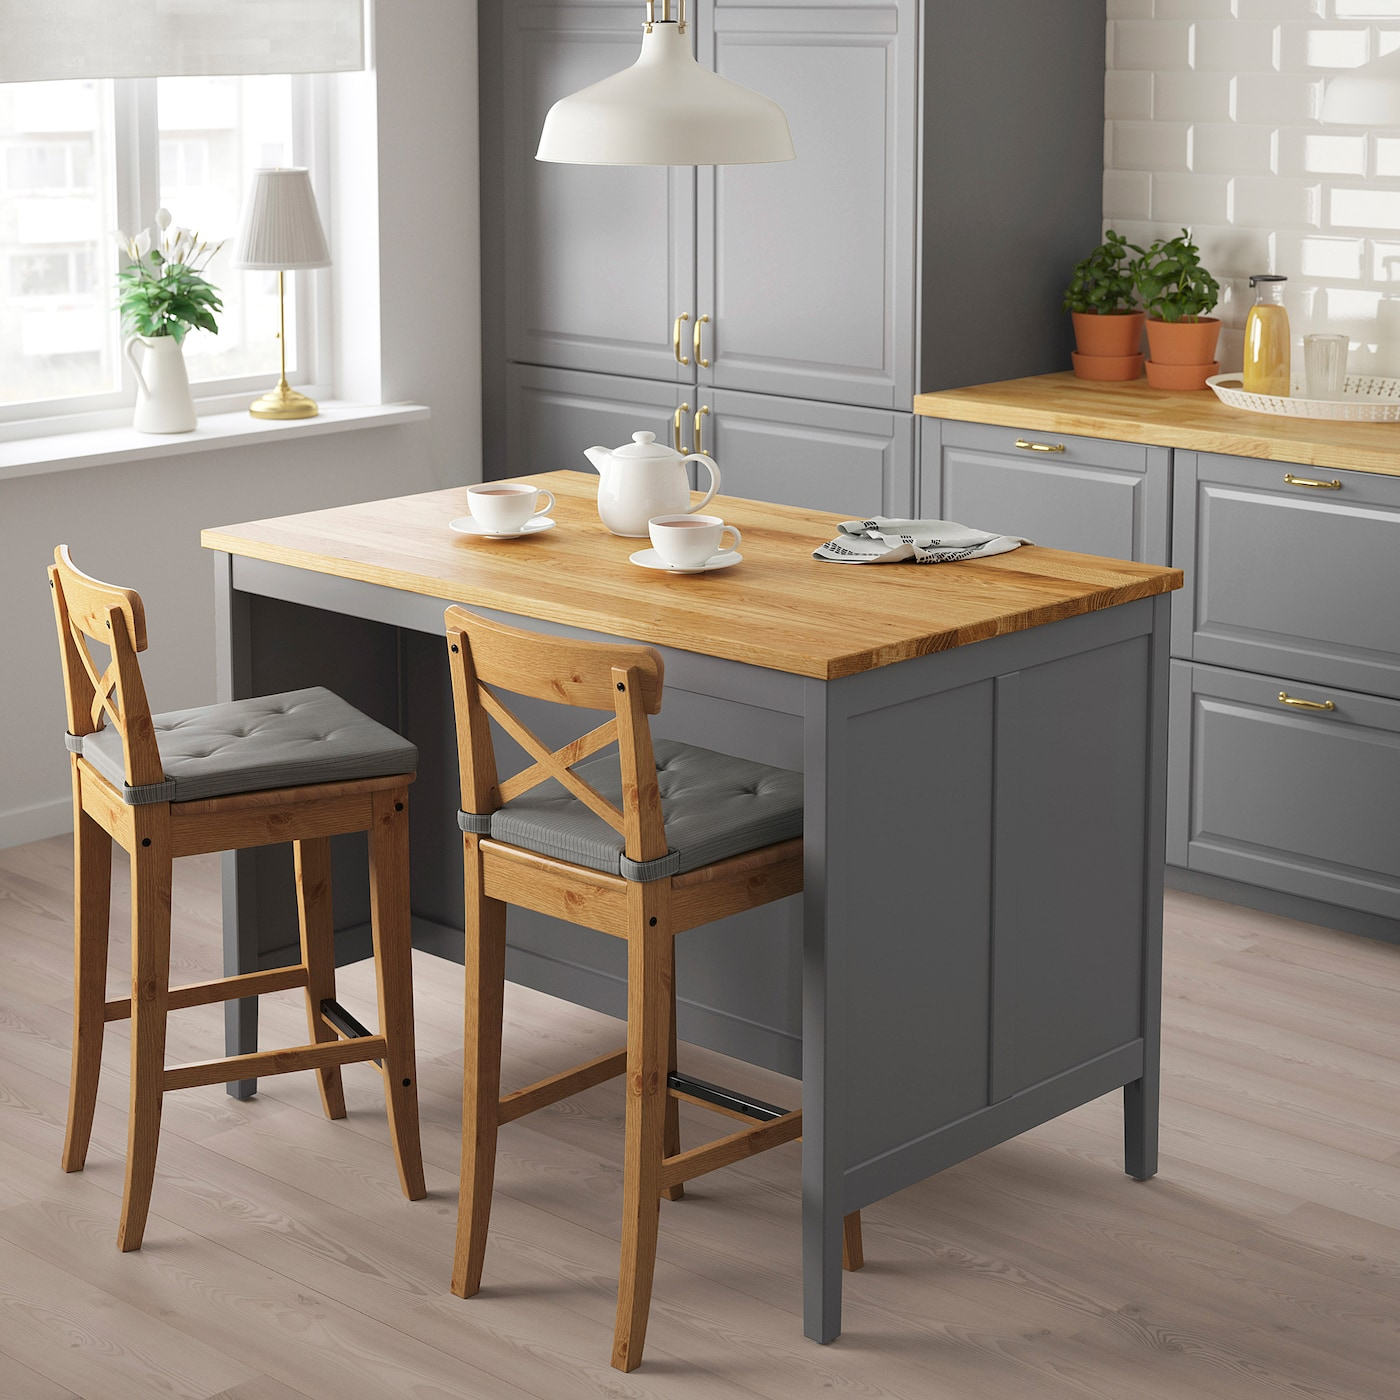 ikea islands kitchen tornviken kitchen island grey oak ikea 9382